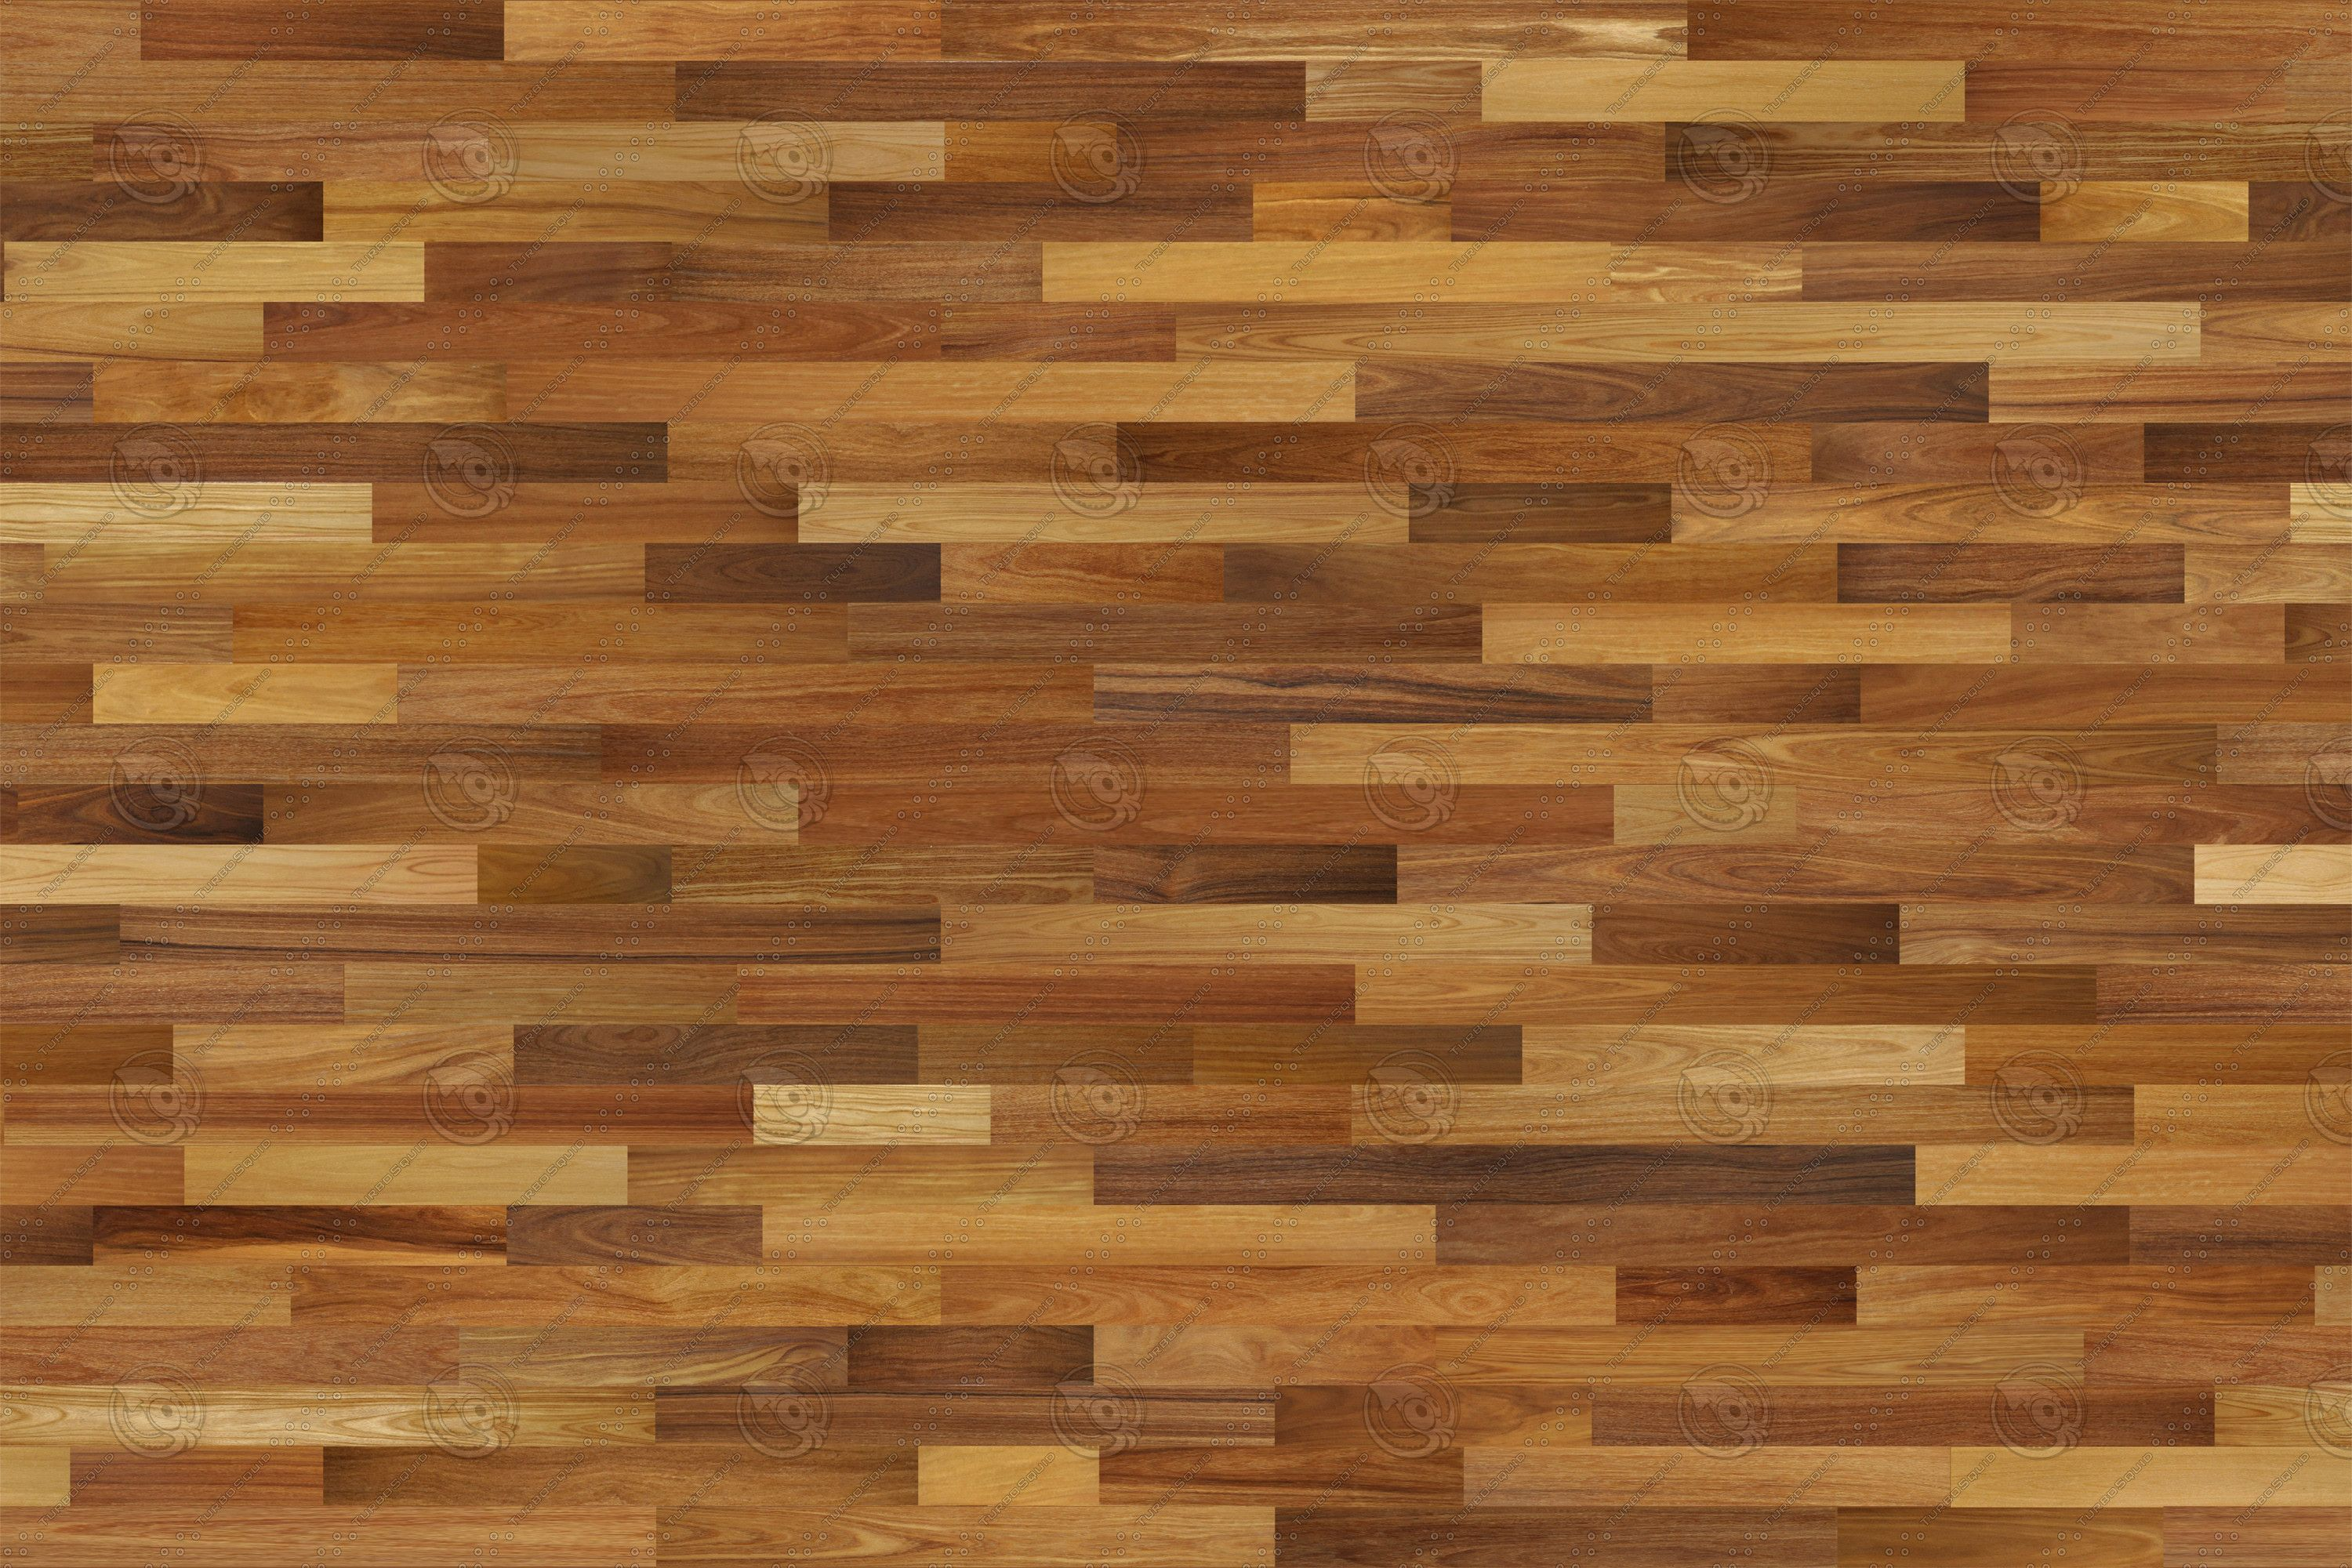 Exotic Hardwood Flooring - Teak Texture Maps available on Turbo Squid, the  world's leading provider of digital models for visualization, films,  television, ...